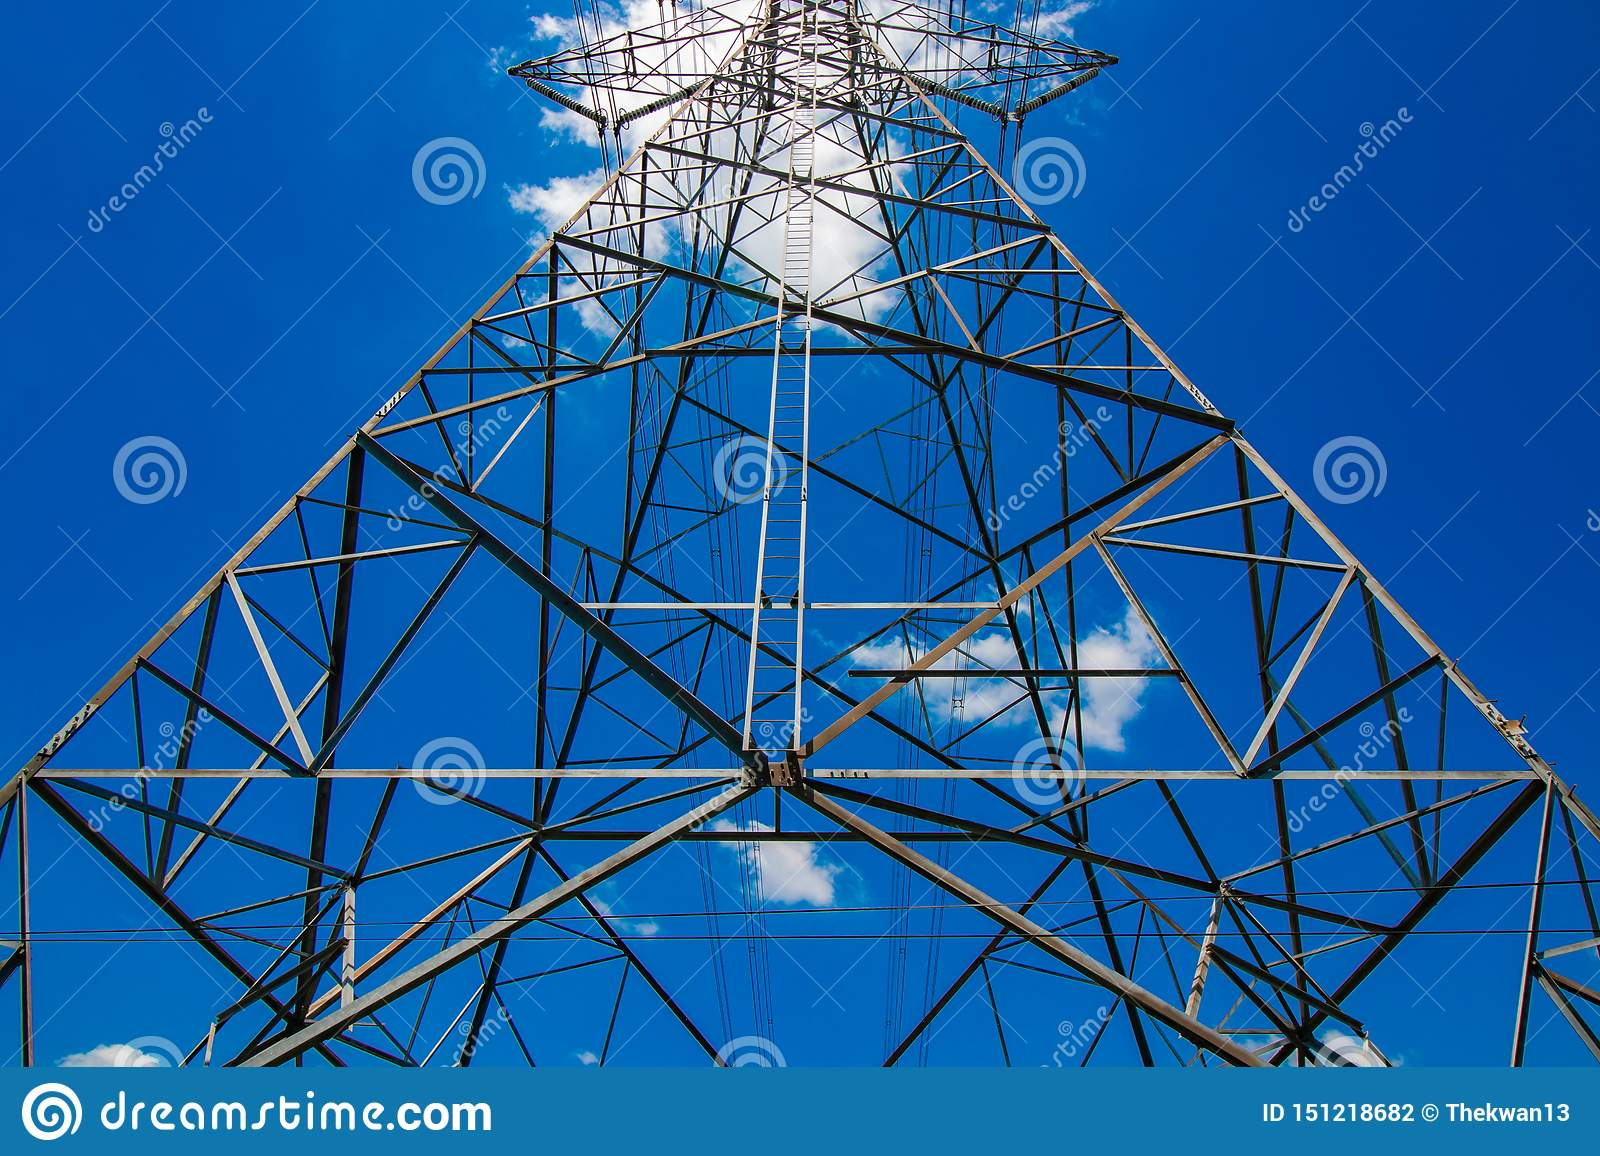 View of High voltage electric pole